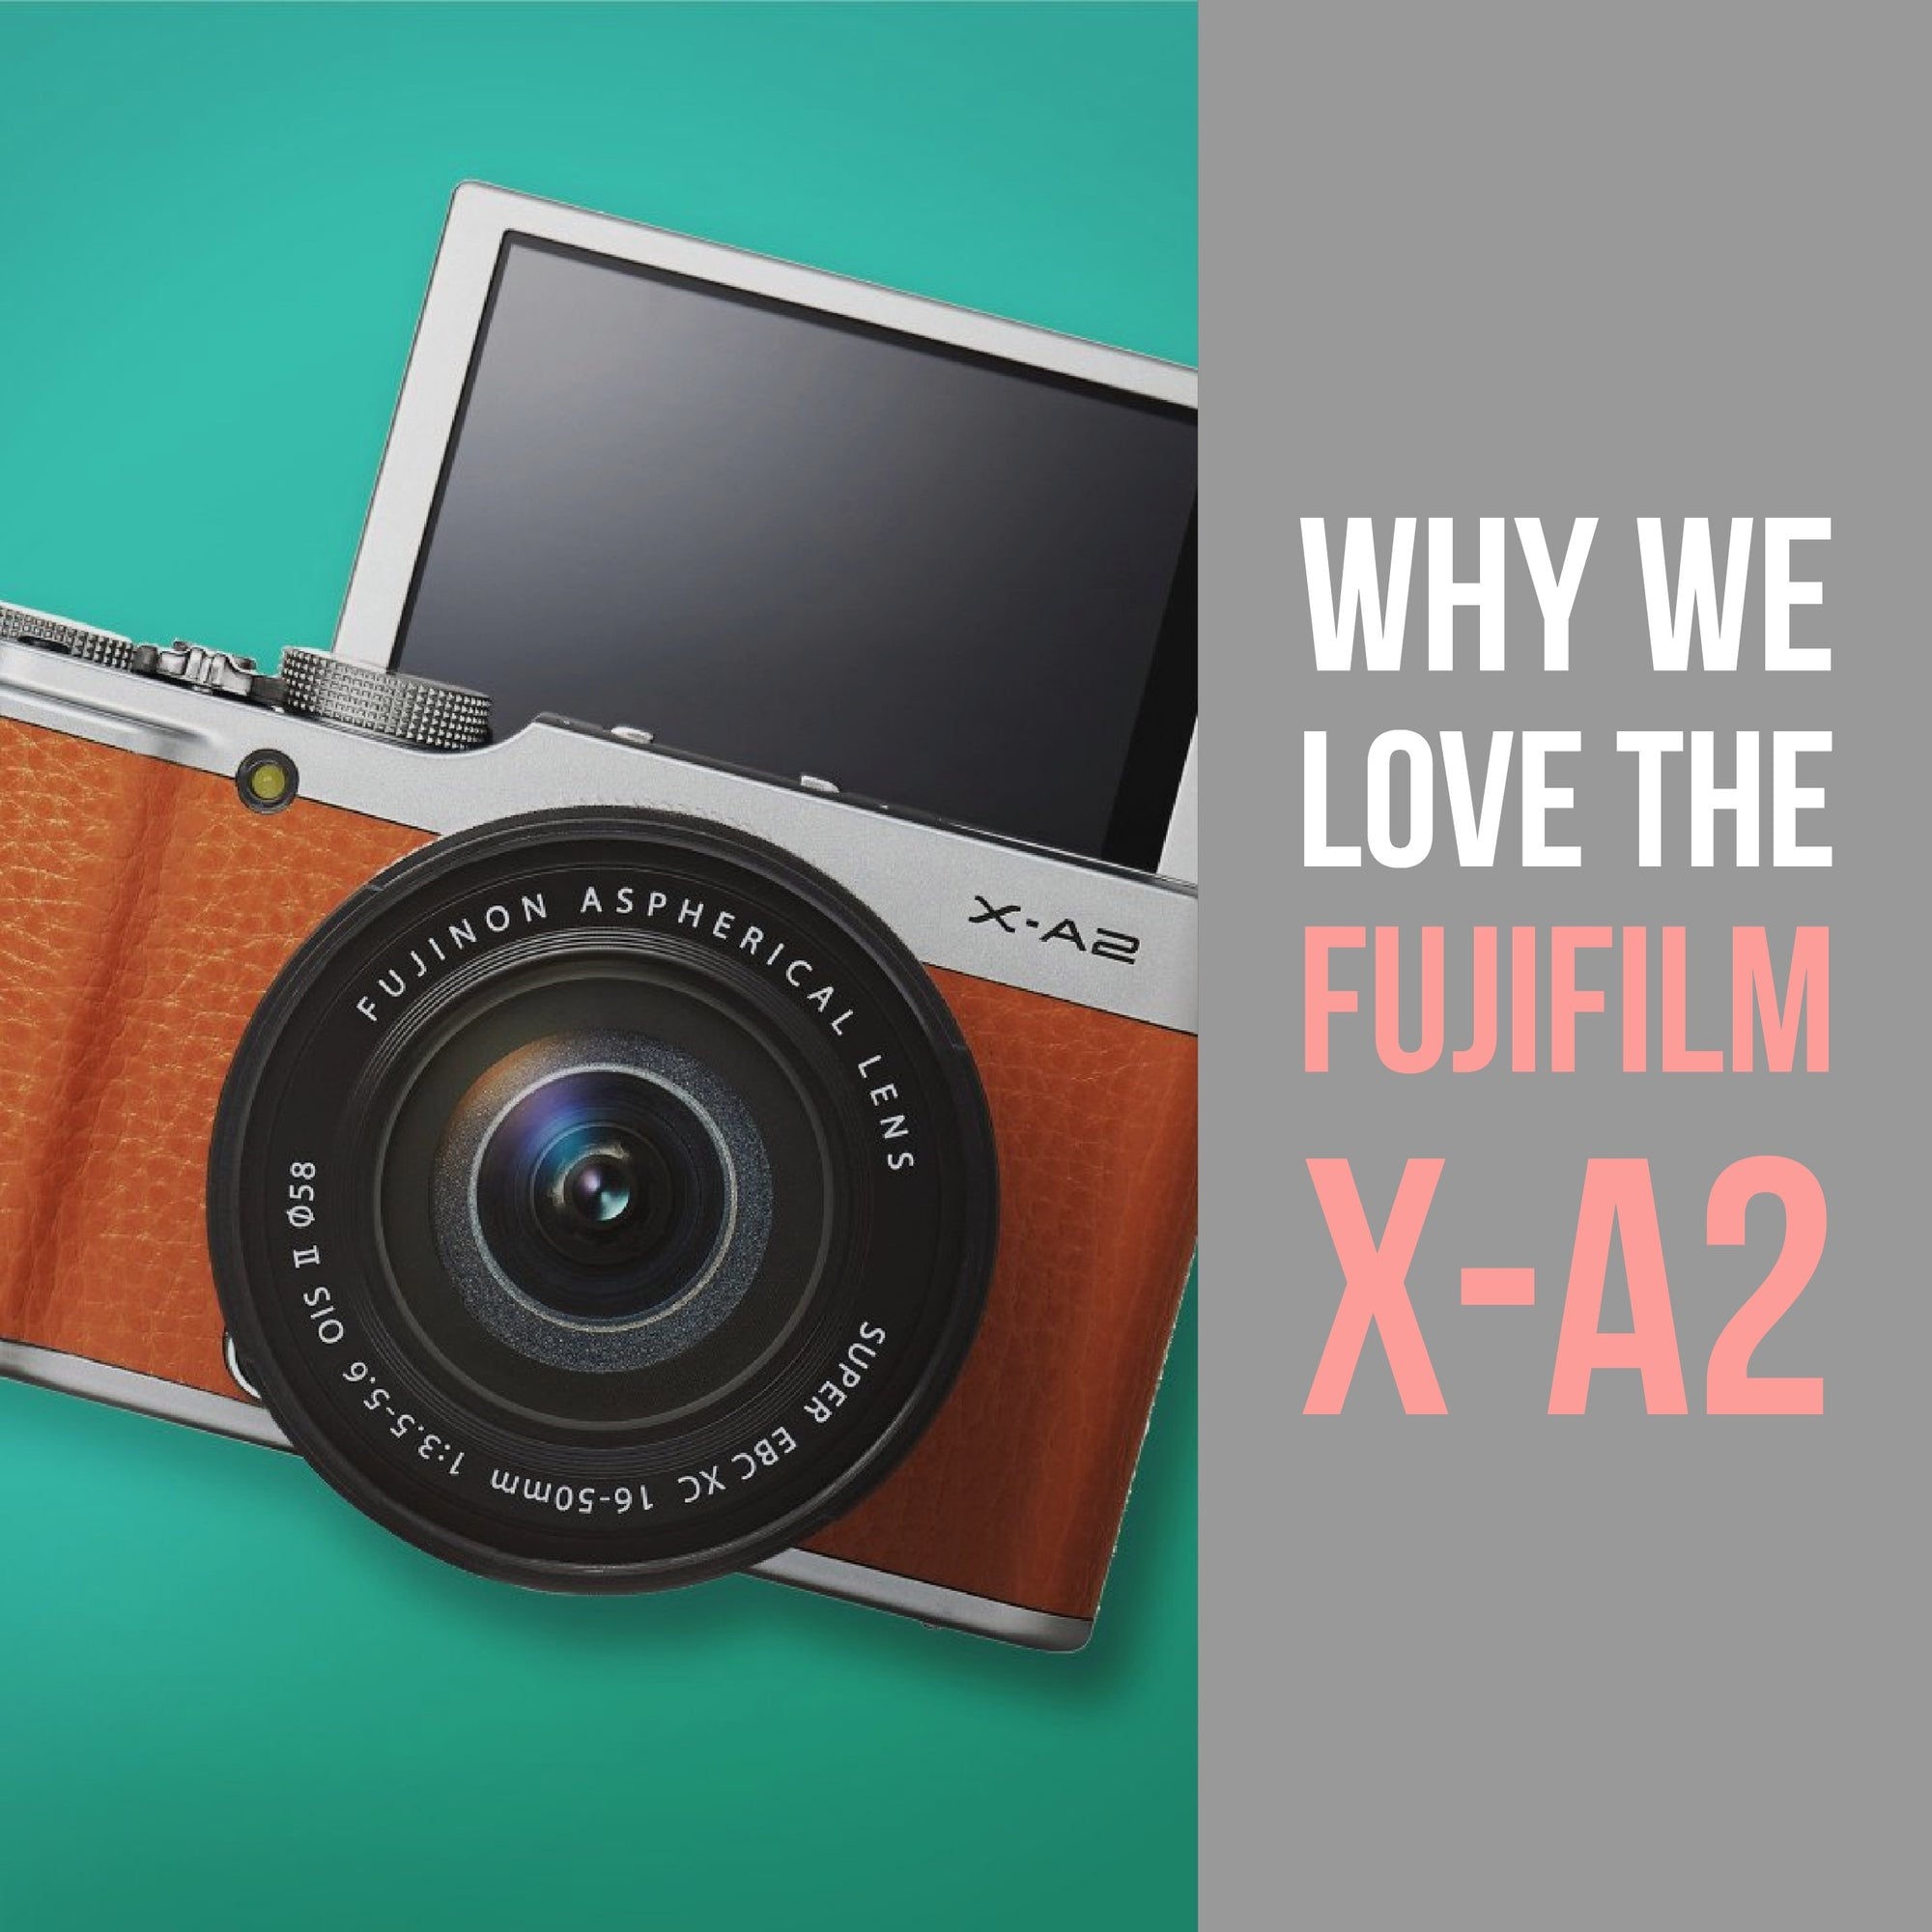 Why we love the FujiFilm X-A2